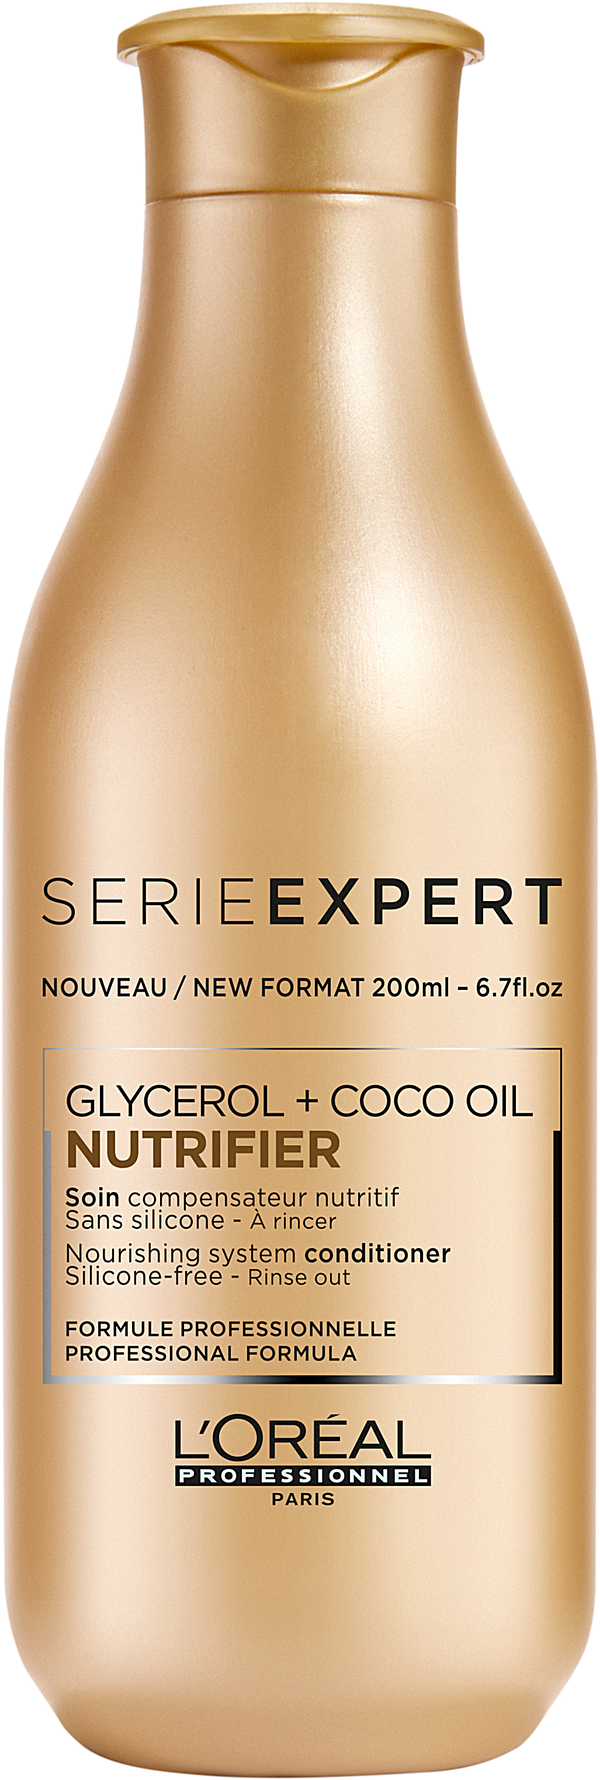 L'Oreal NUTRIFIER CONDITIONER 200ml